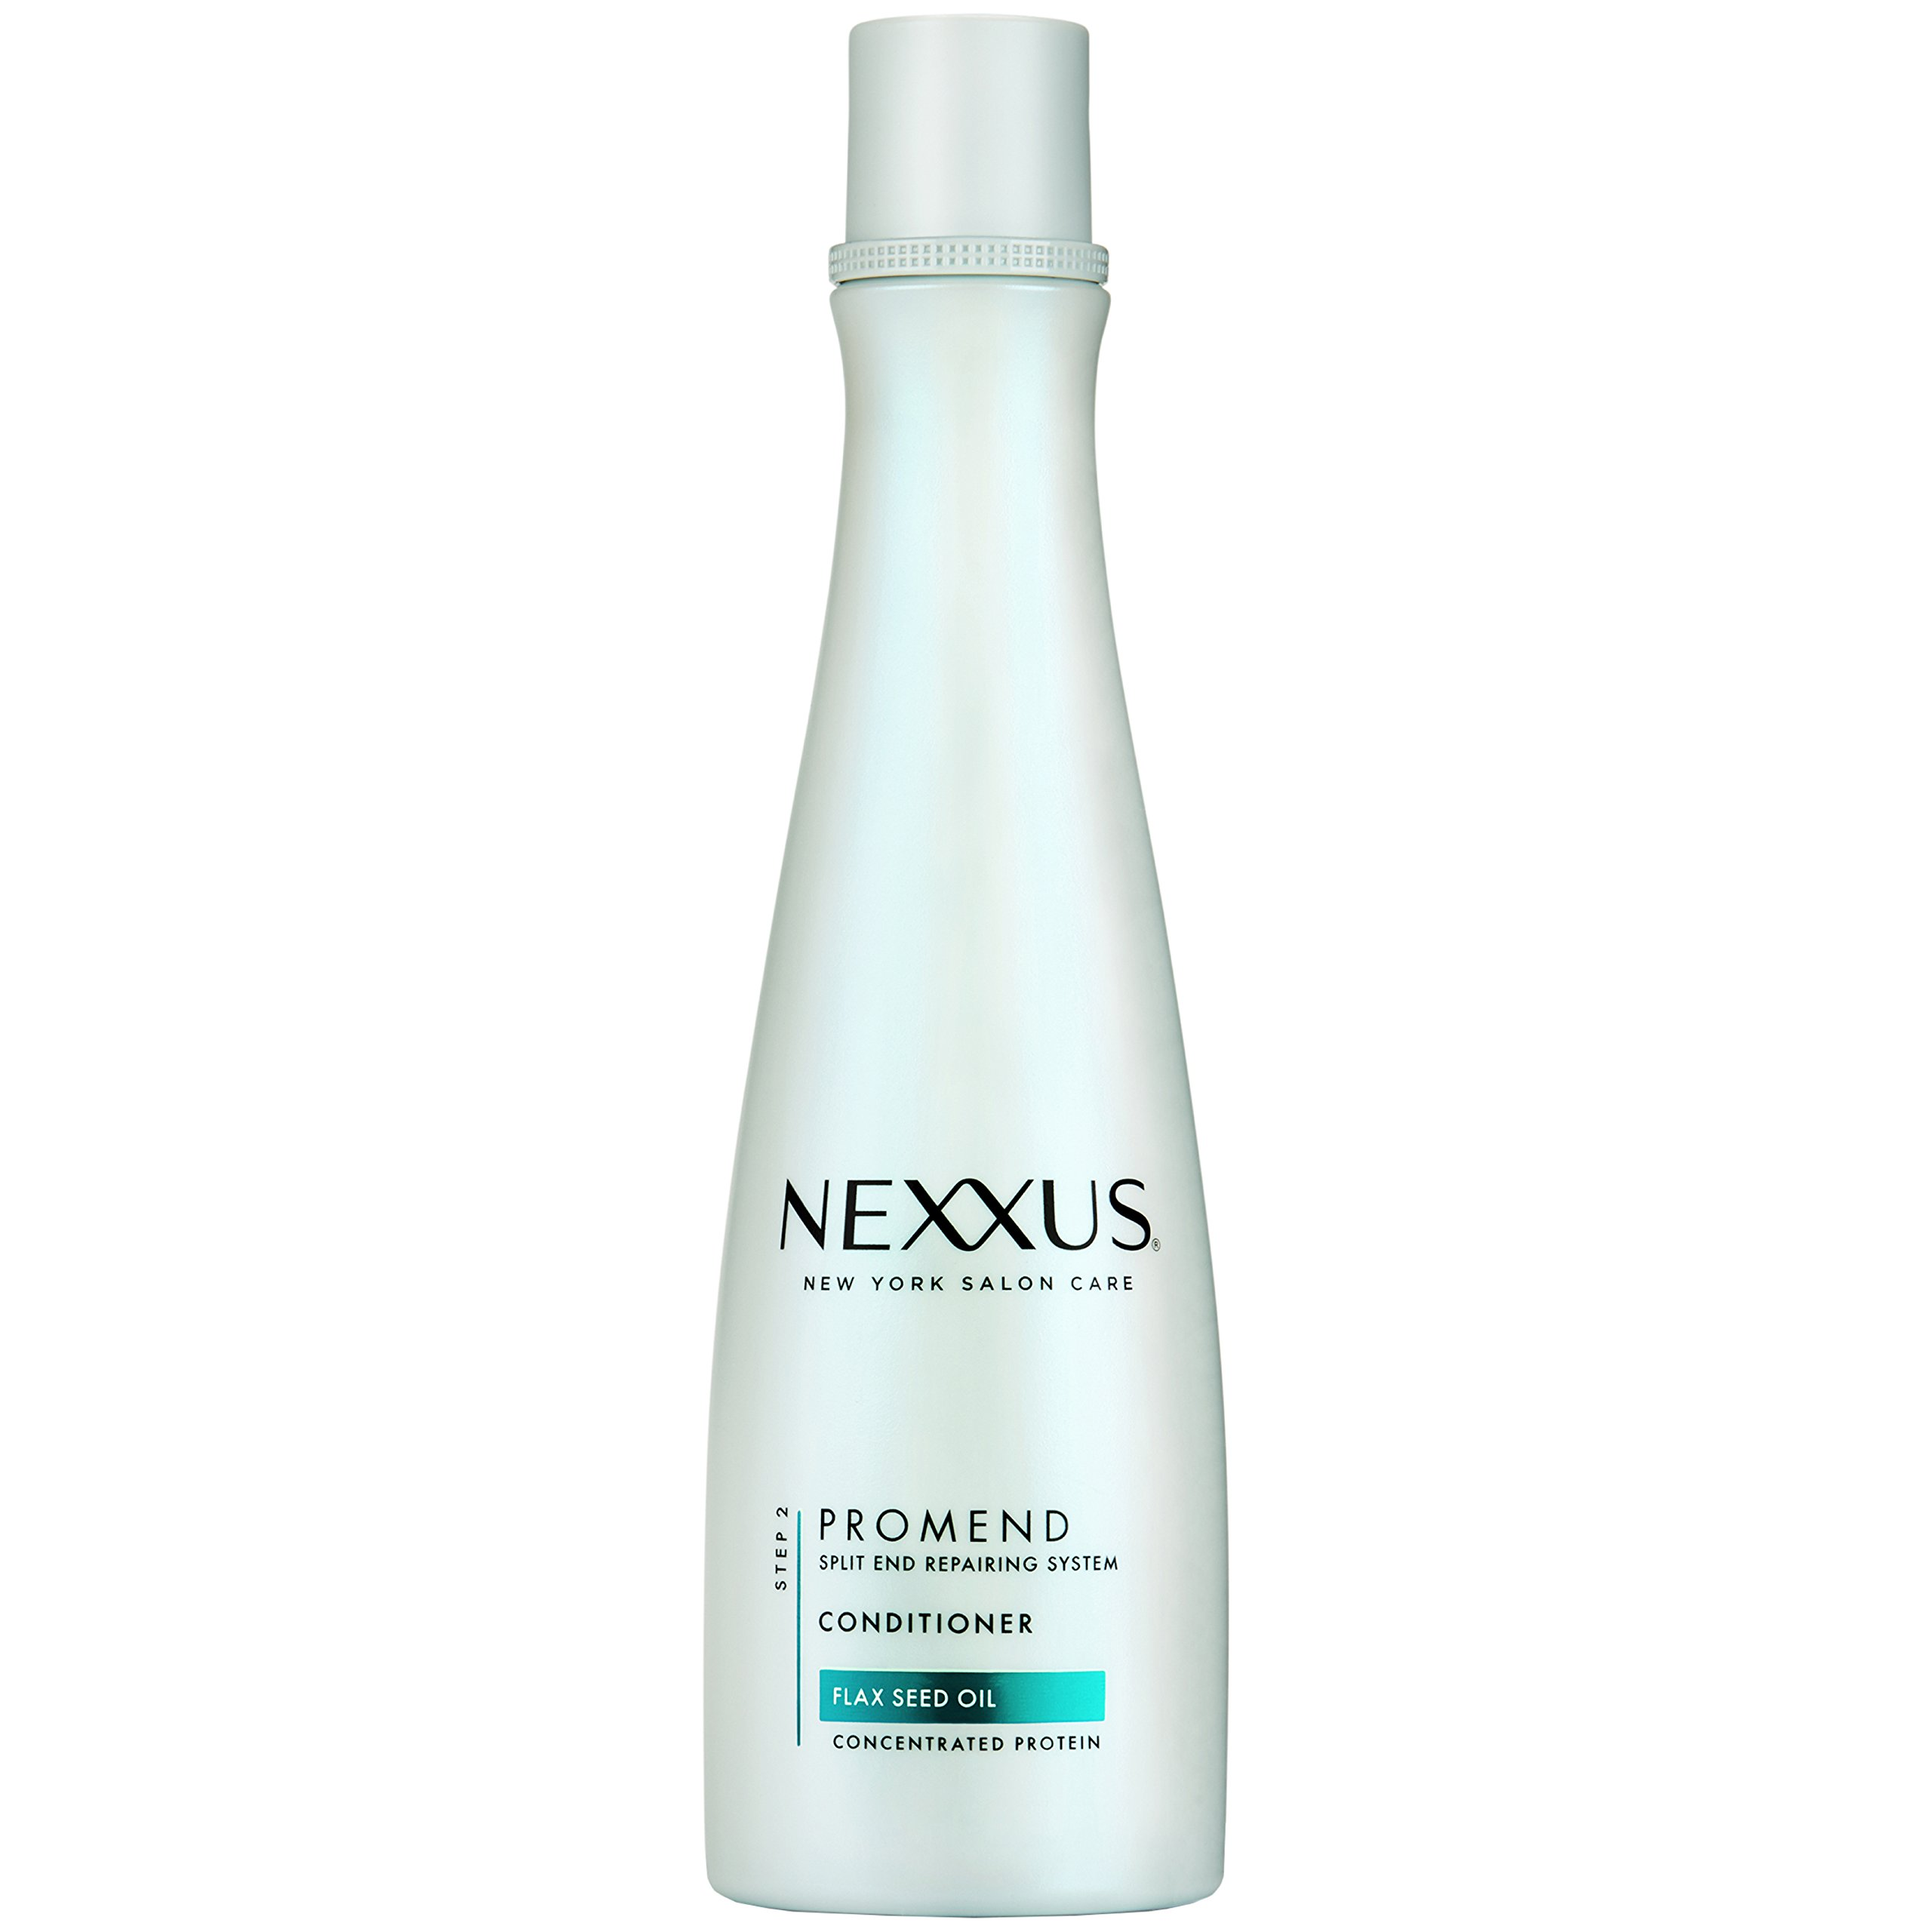 Nexxus Promend Conditioner, for Hair Prone to Split Ends, 13.5 oz